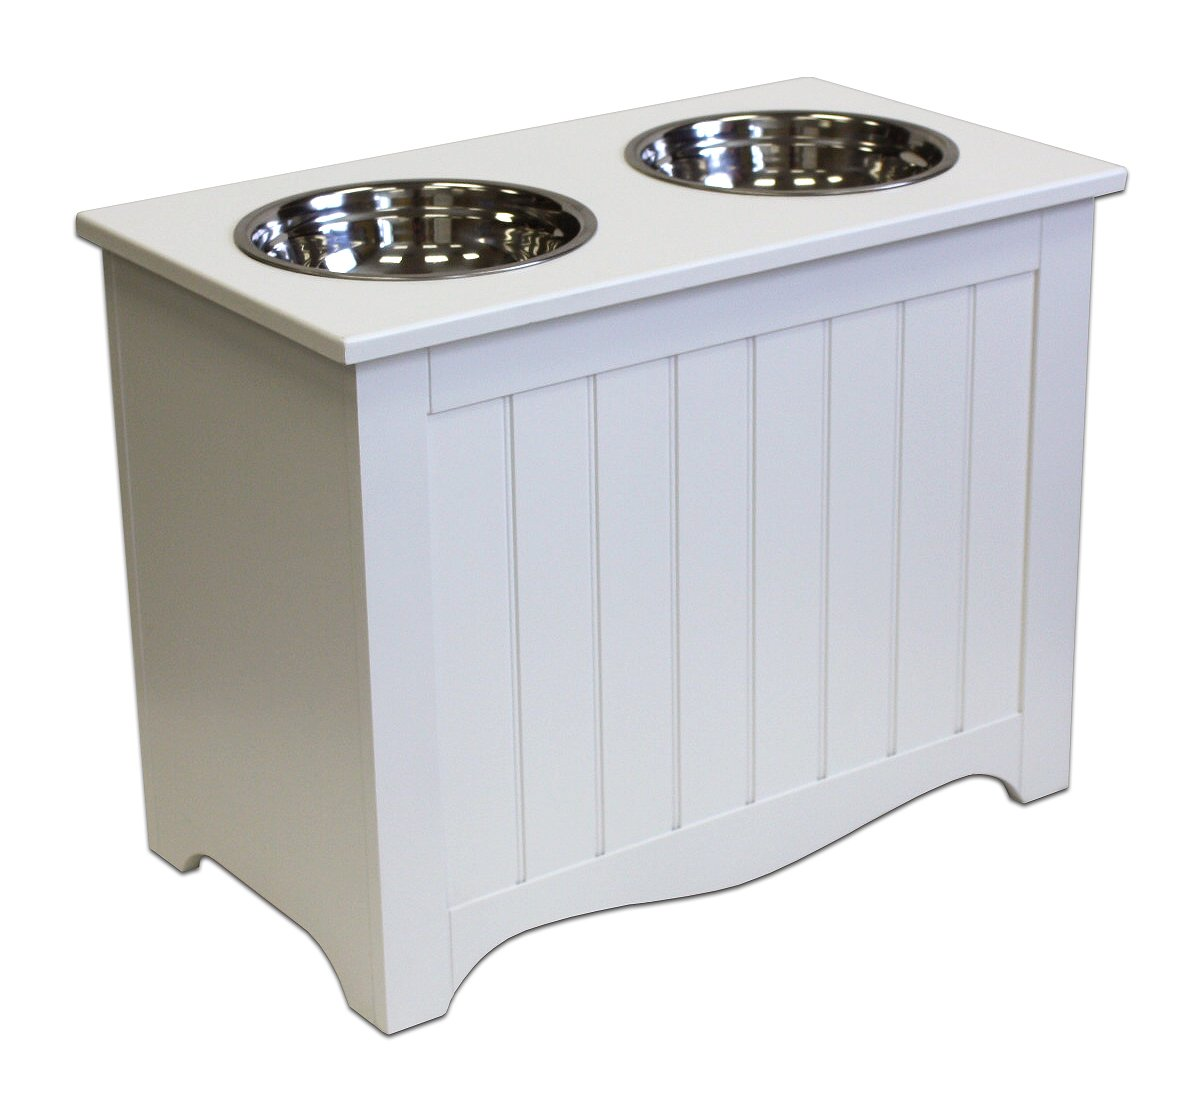 A Pet Project Winter White MDF Large Pet Food Server and Storage Box - 20'' by A Pet Project